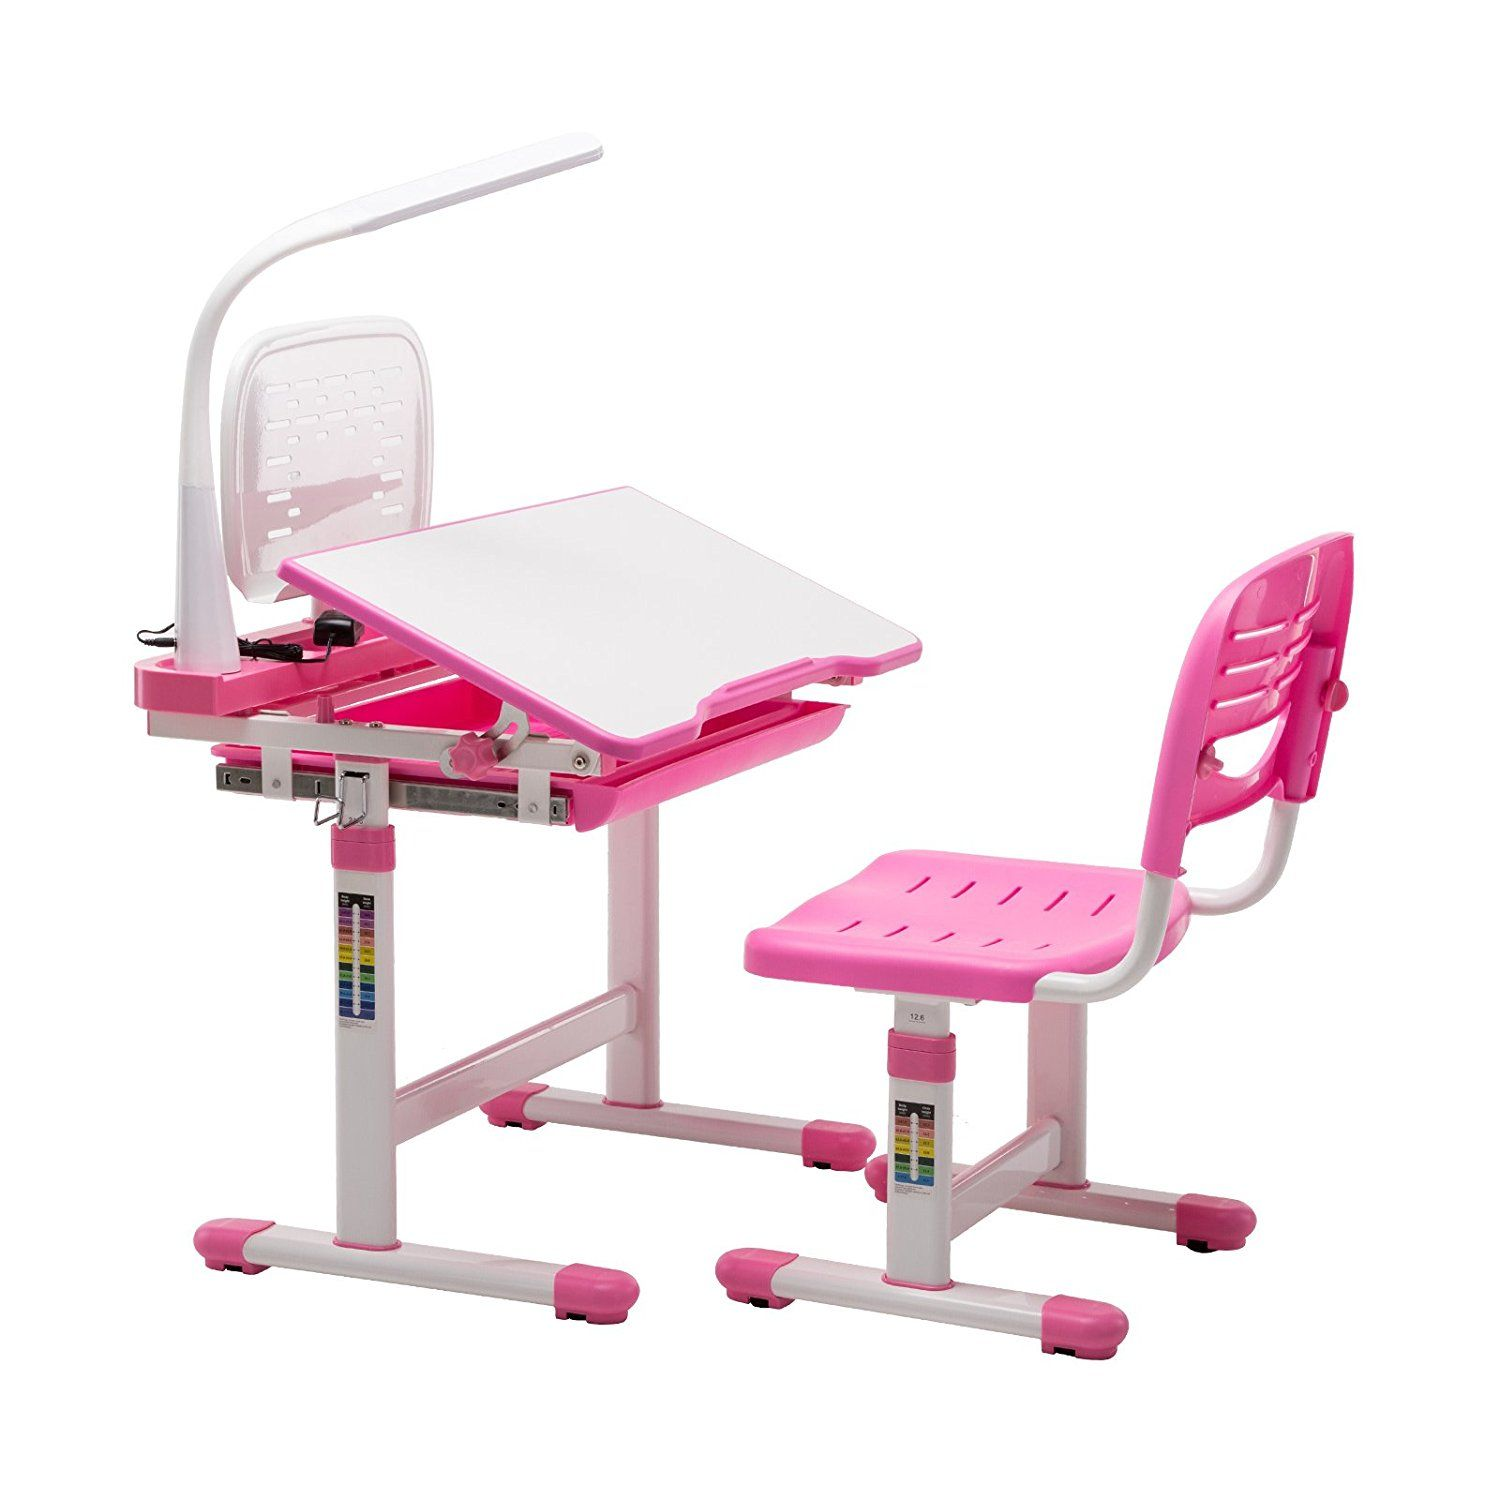 Kids Desk And Chair Set Furnitureanddecors Com In 2020 Desk And Chair Set Childrens Desk Kid Desk